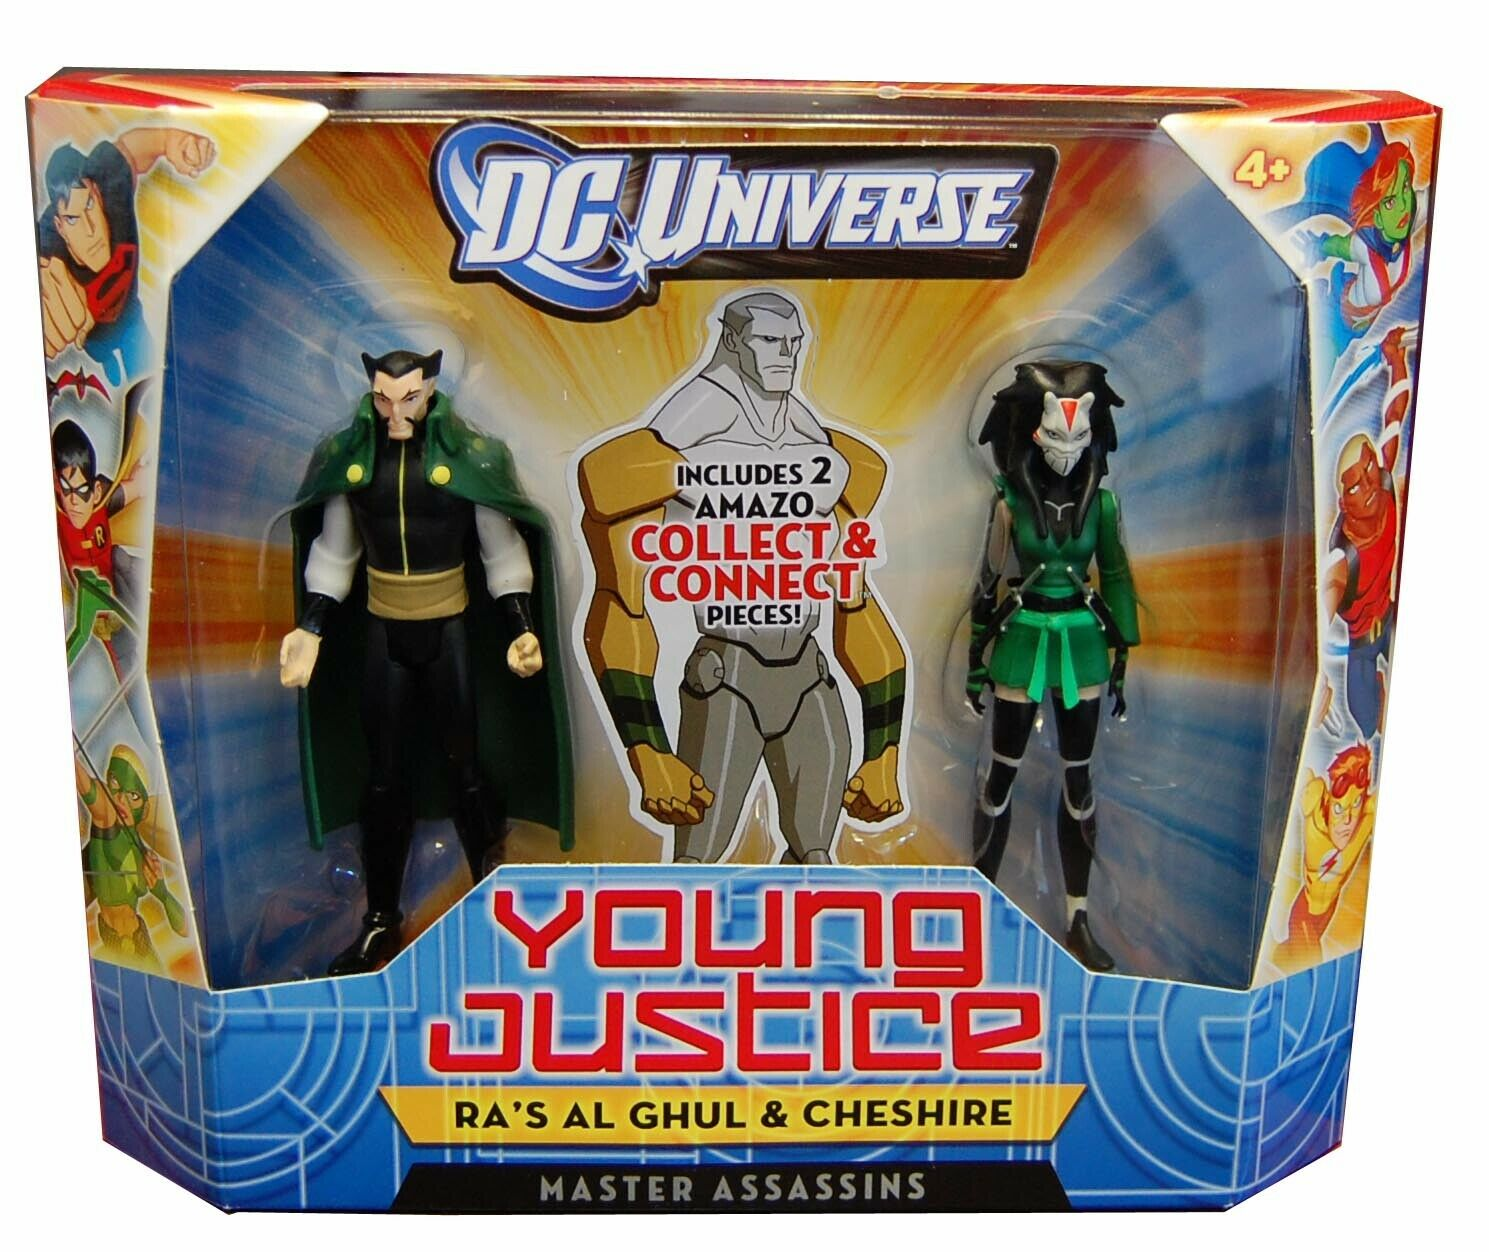 2011 DC Universe Young Justice Master Assassins RA'S AL GHUL & CHESHIRE Sealed